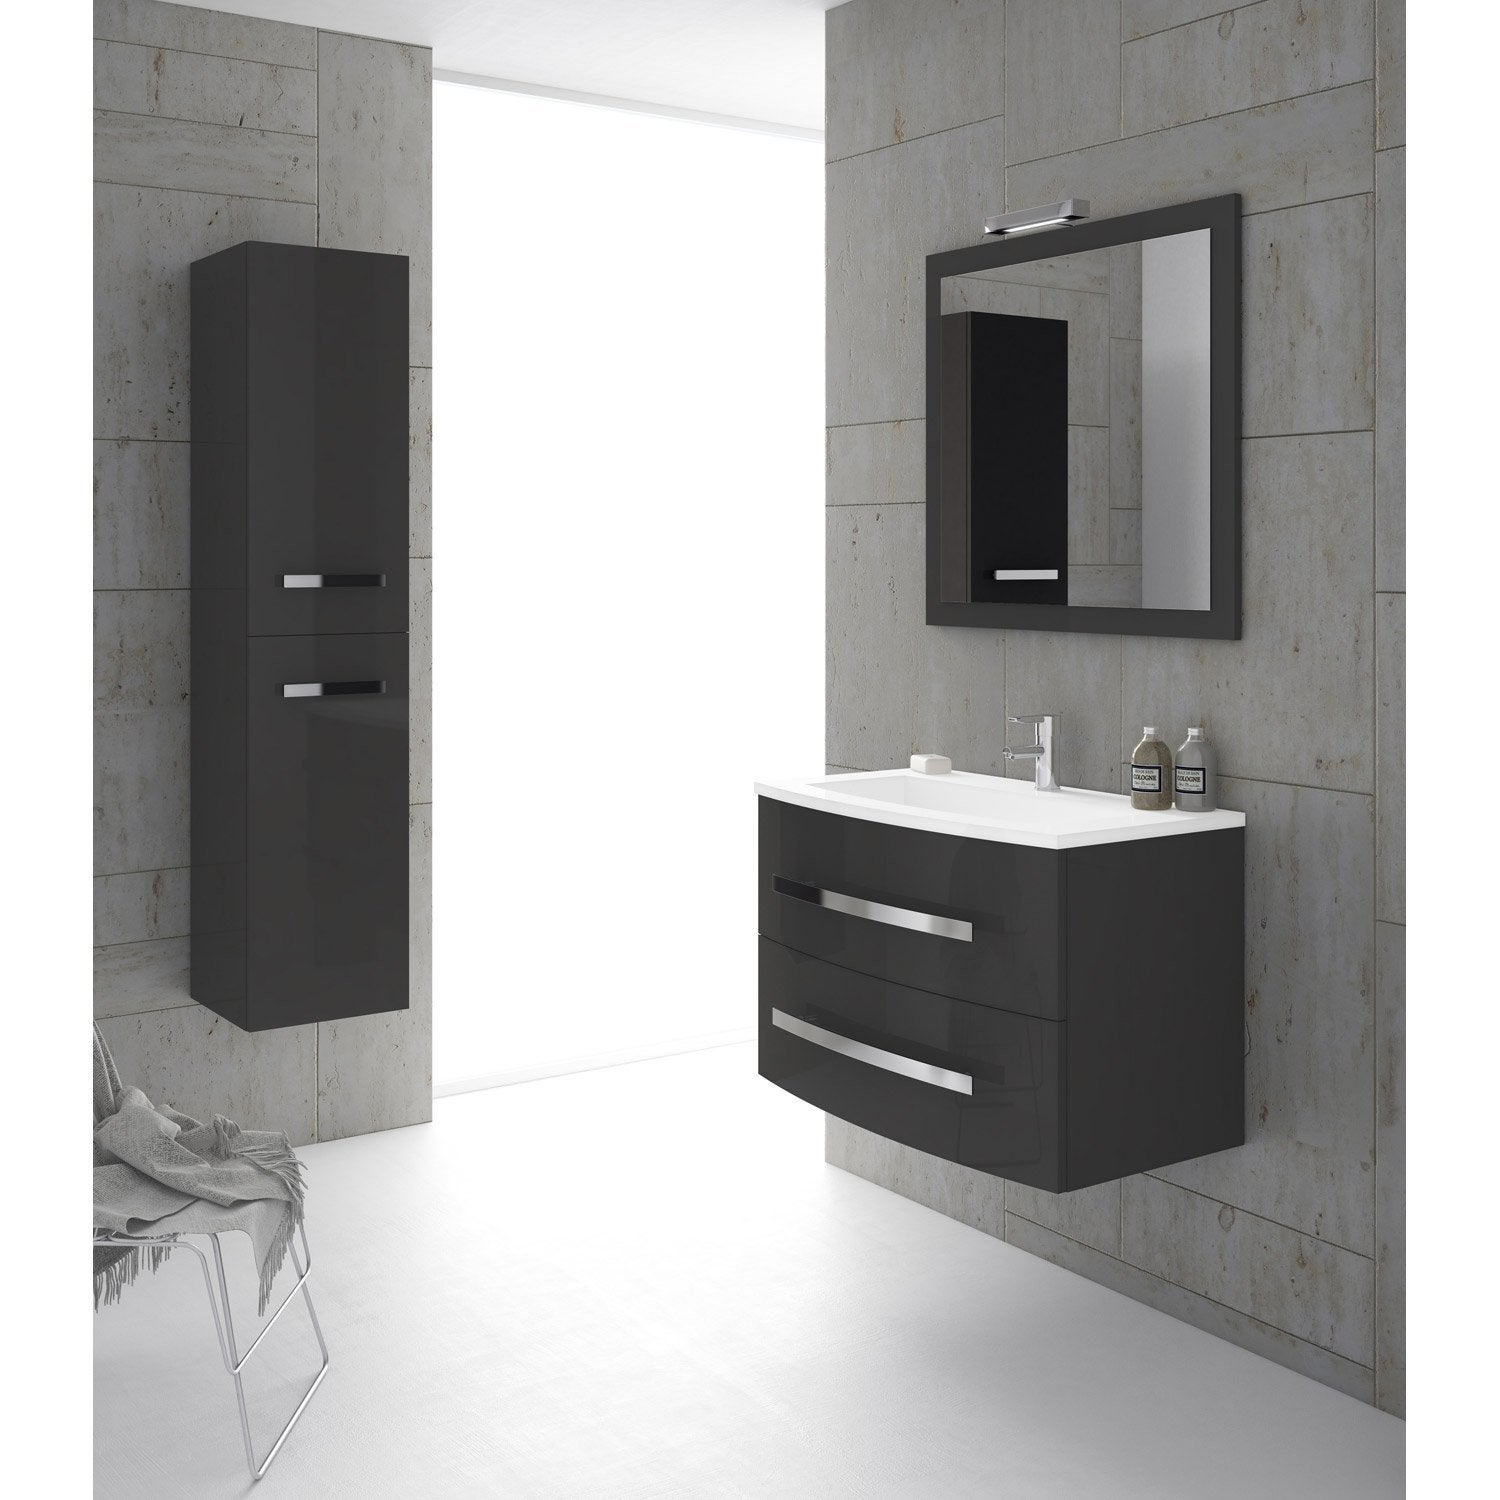 panneau japonais salle de bain 43164 salle de bain id es. Black Bedroom Furniture Sets. Home Design Ideas